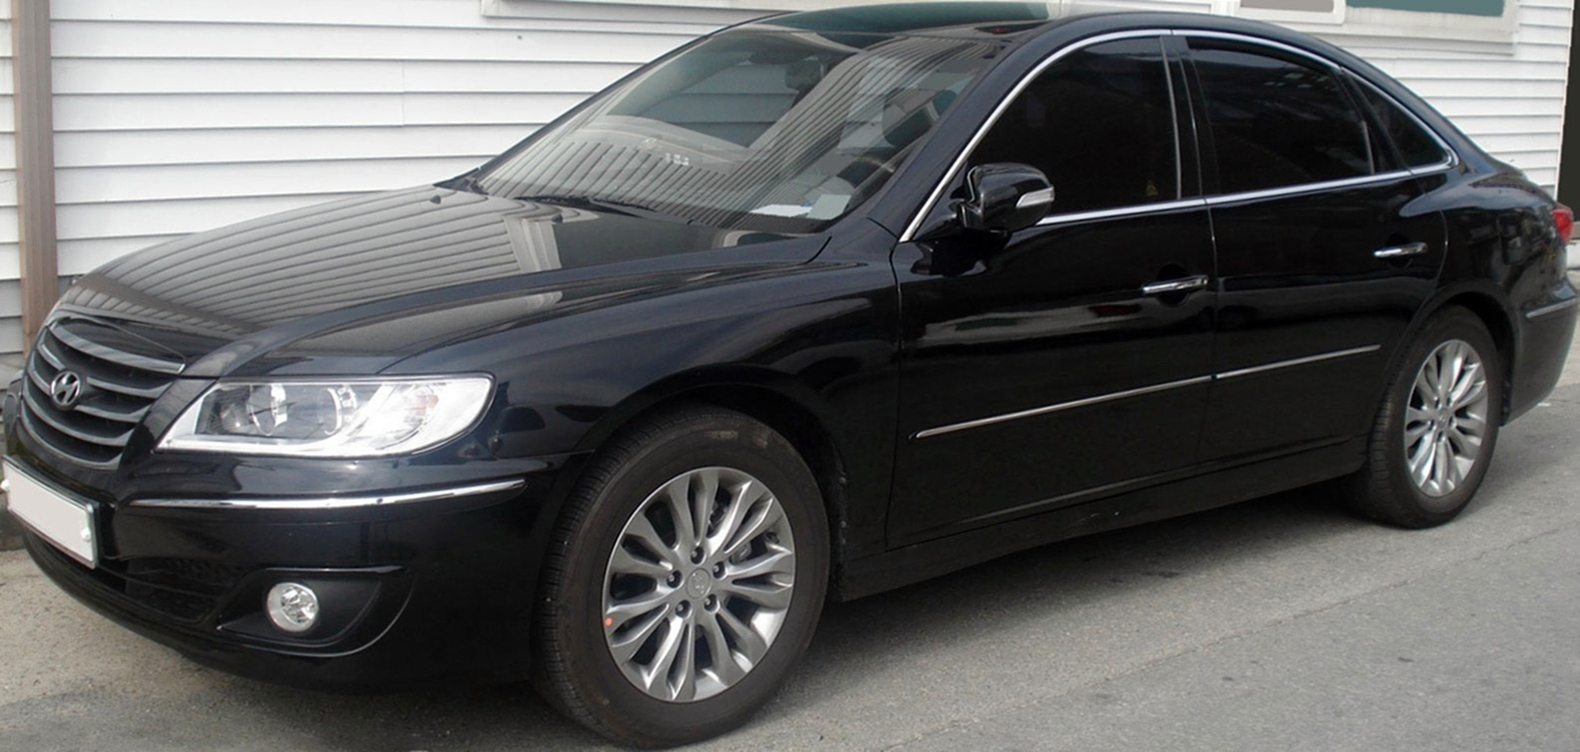 sell my car – hyundai grandeur black